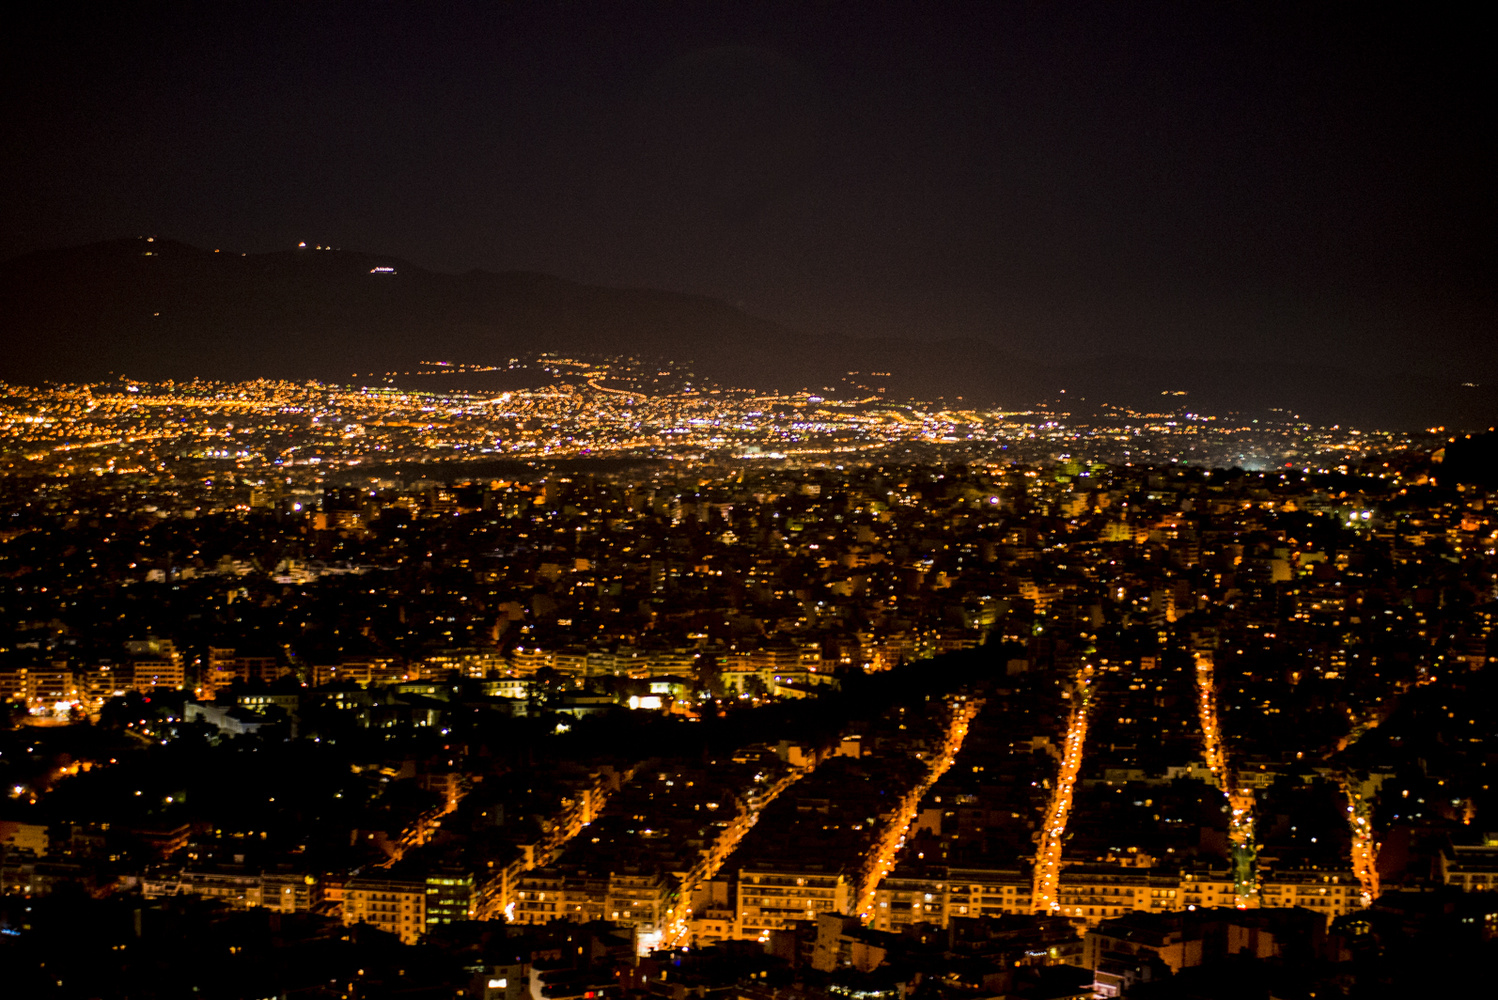 View from Lycabettus Hill at Night by George Stergiopoulos